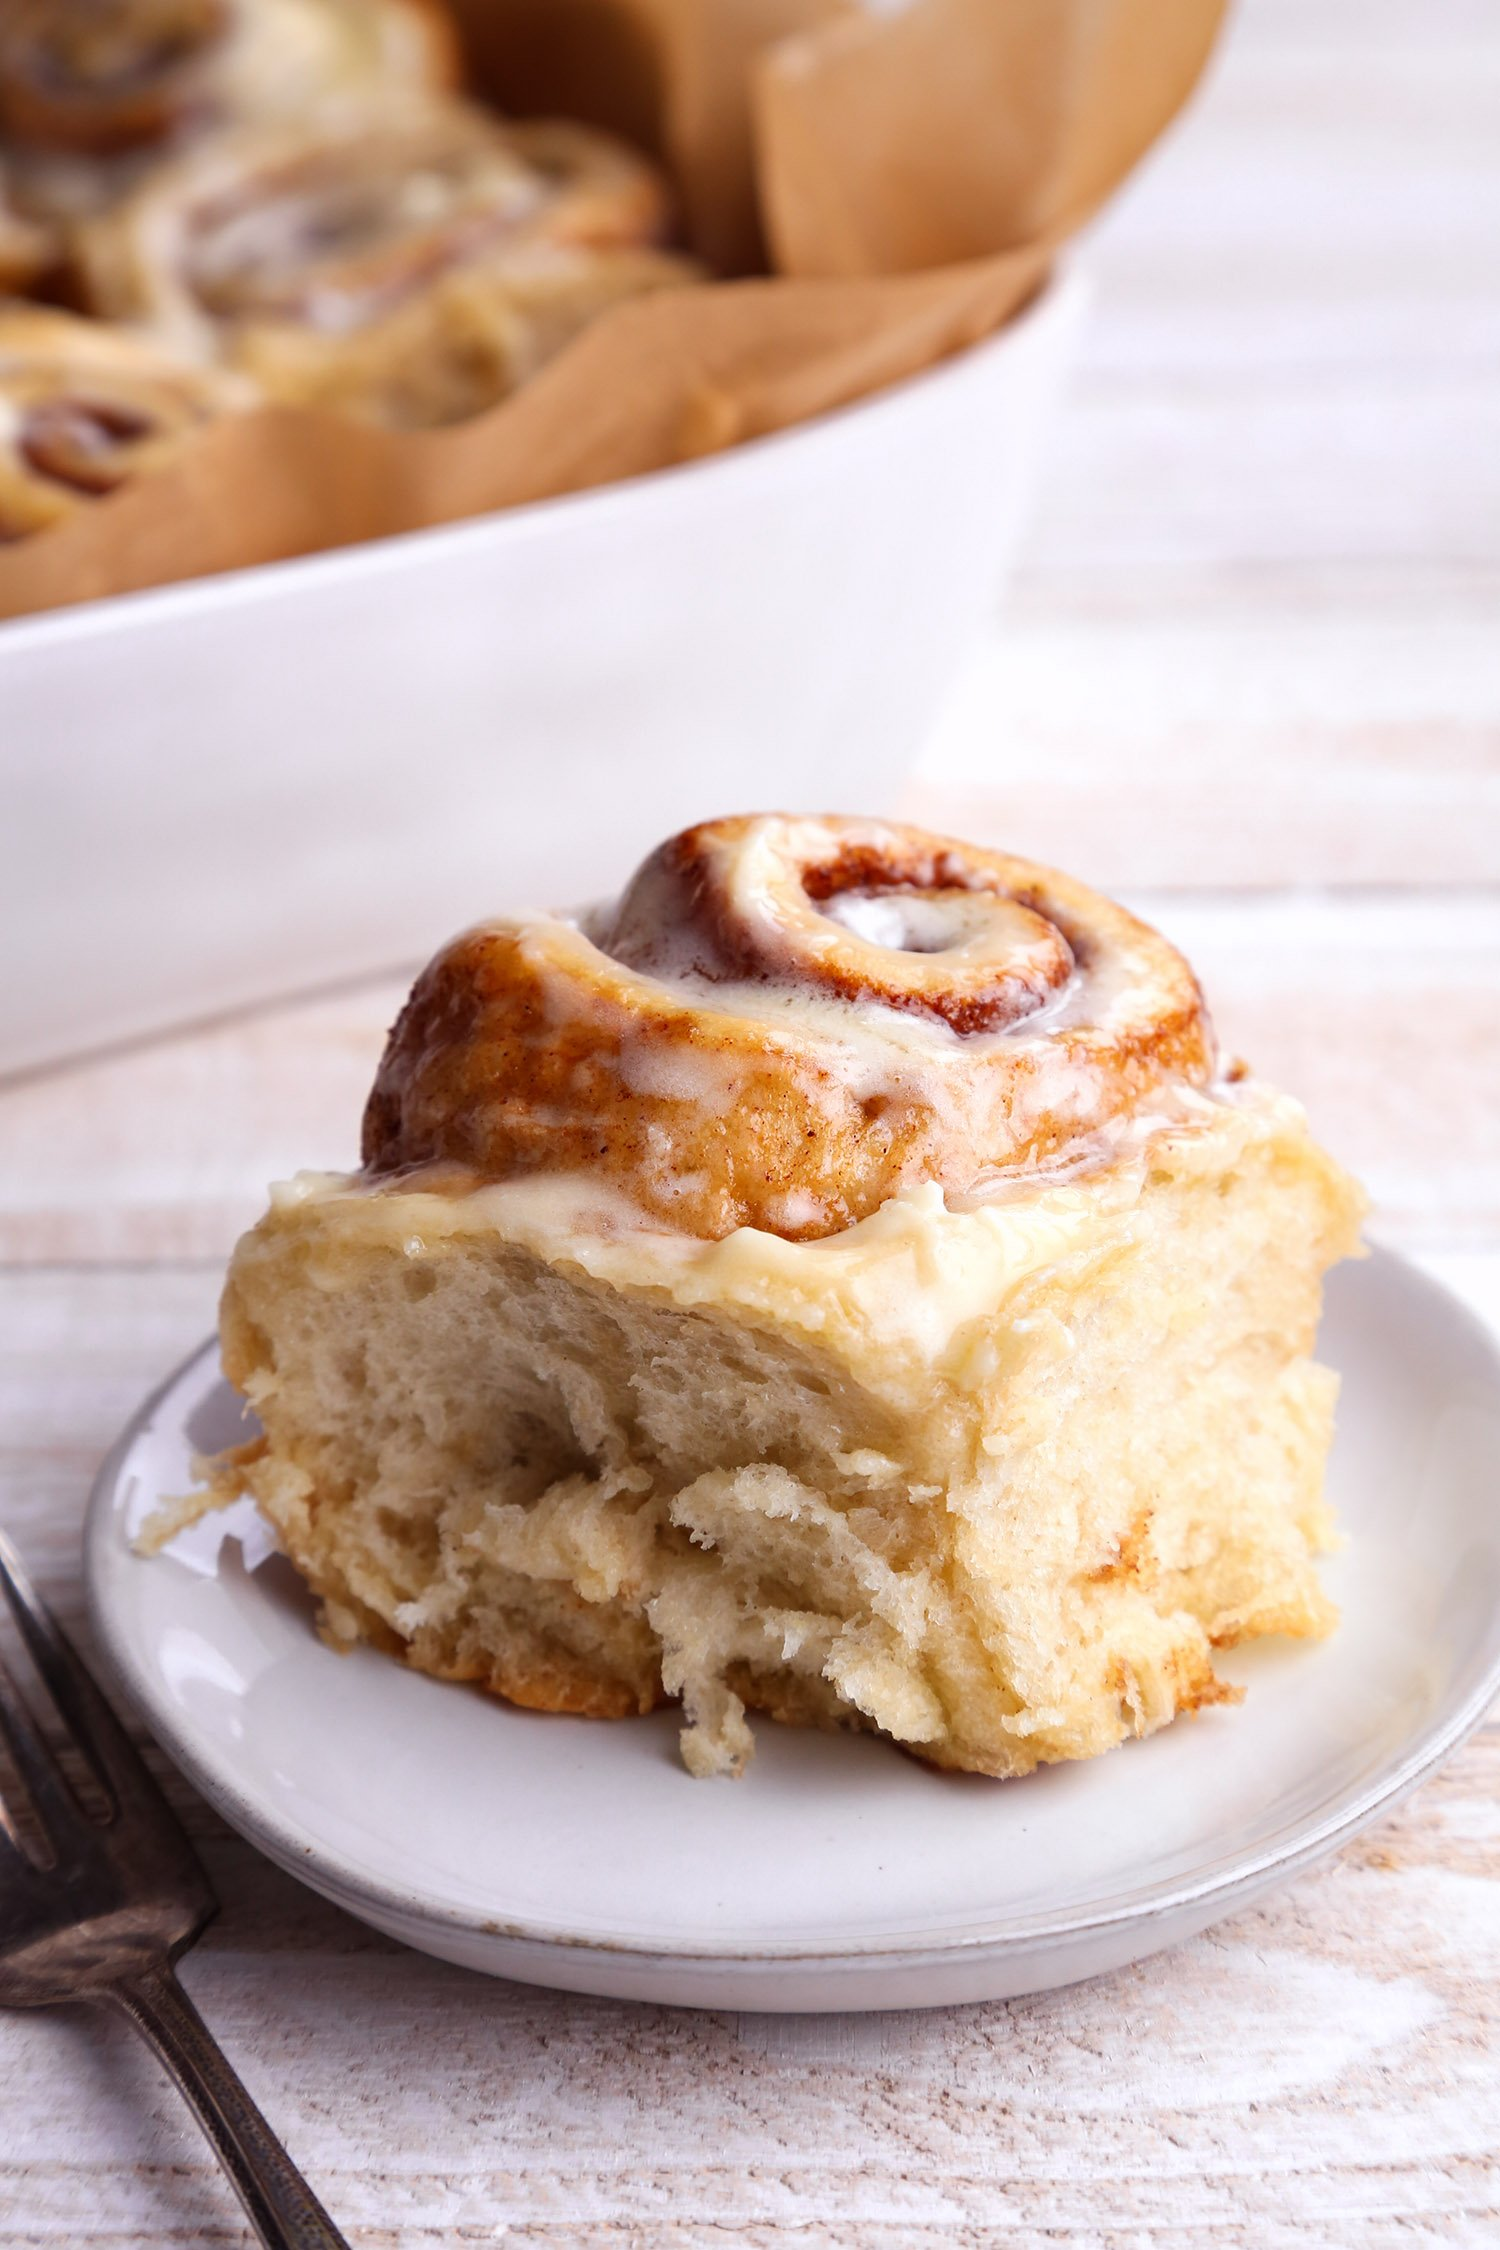 Simple Cinnamon Rolls | Refined Sugar Free and Vegan Friendly | Wife Mama Foodie